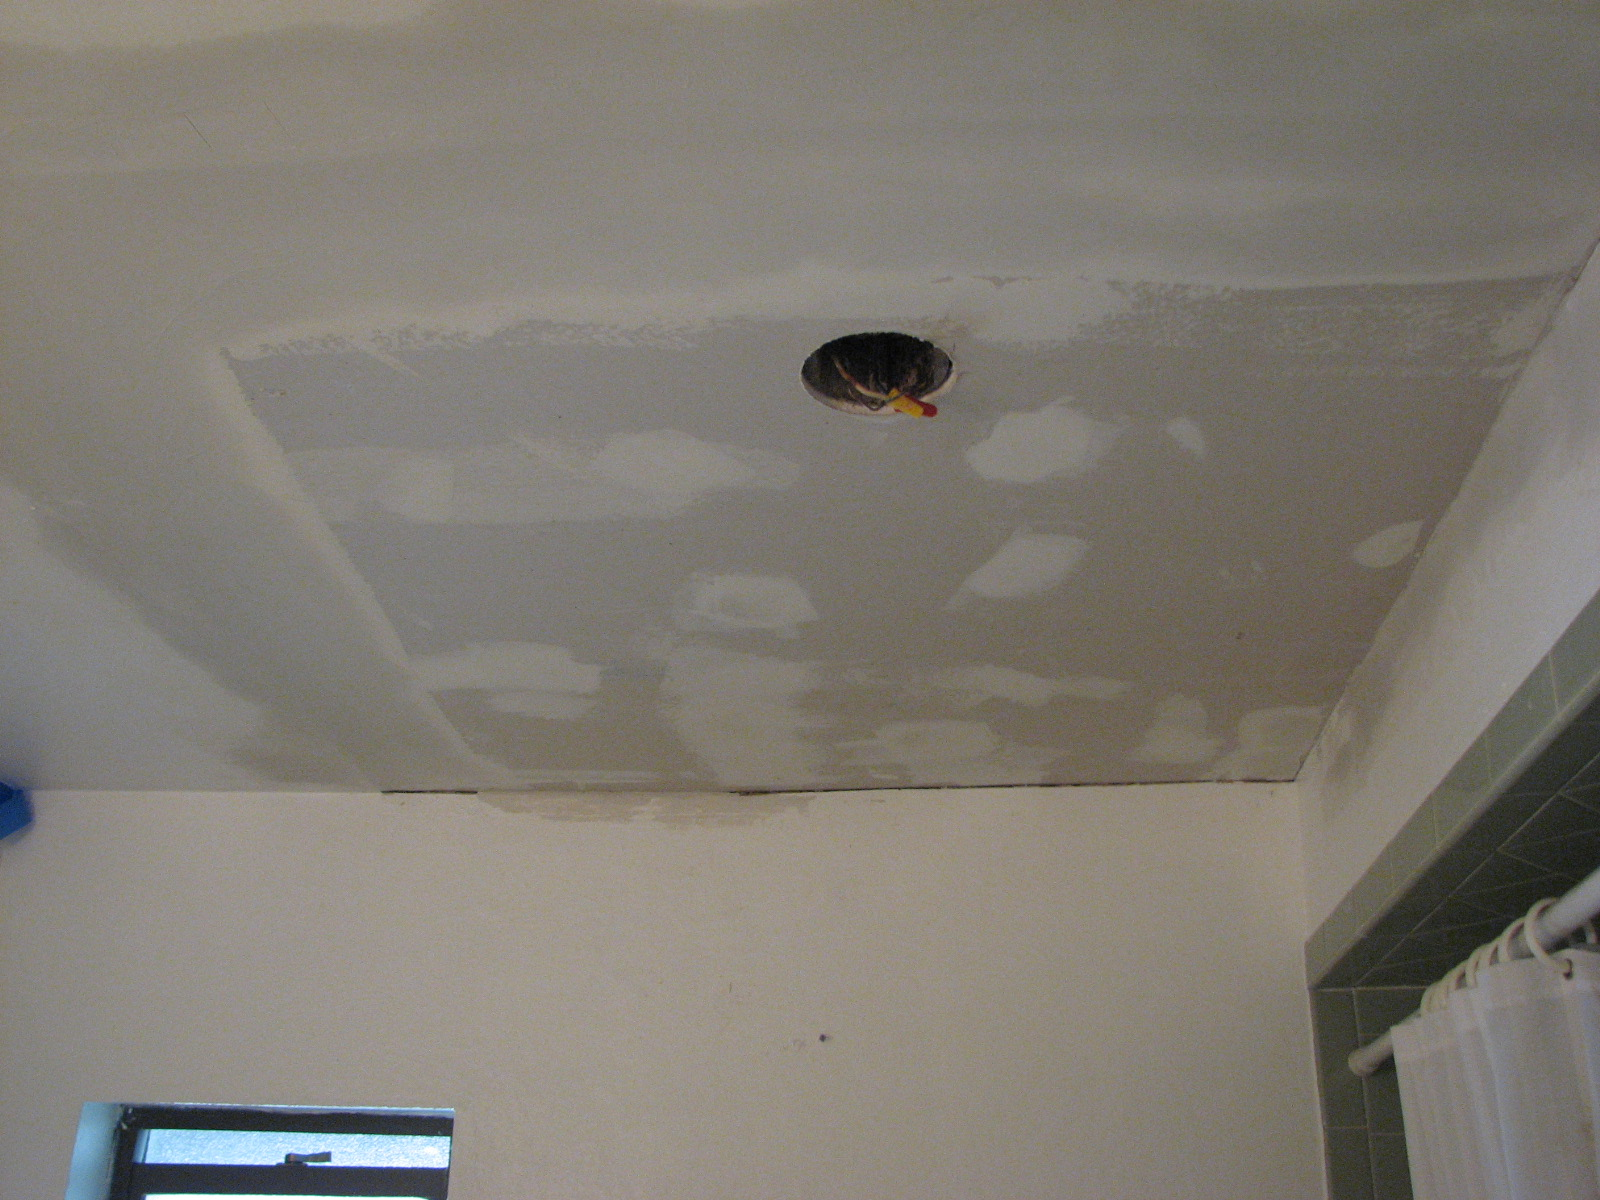 Ceiling Repair Drywall Kemistorbitalshowco - How to fix bathroom ceiling